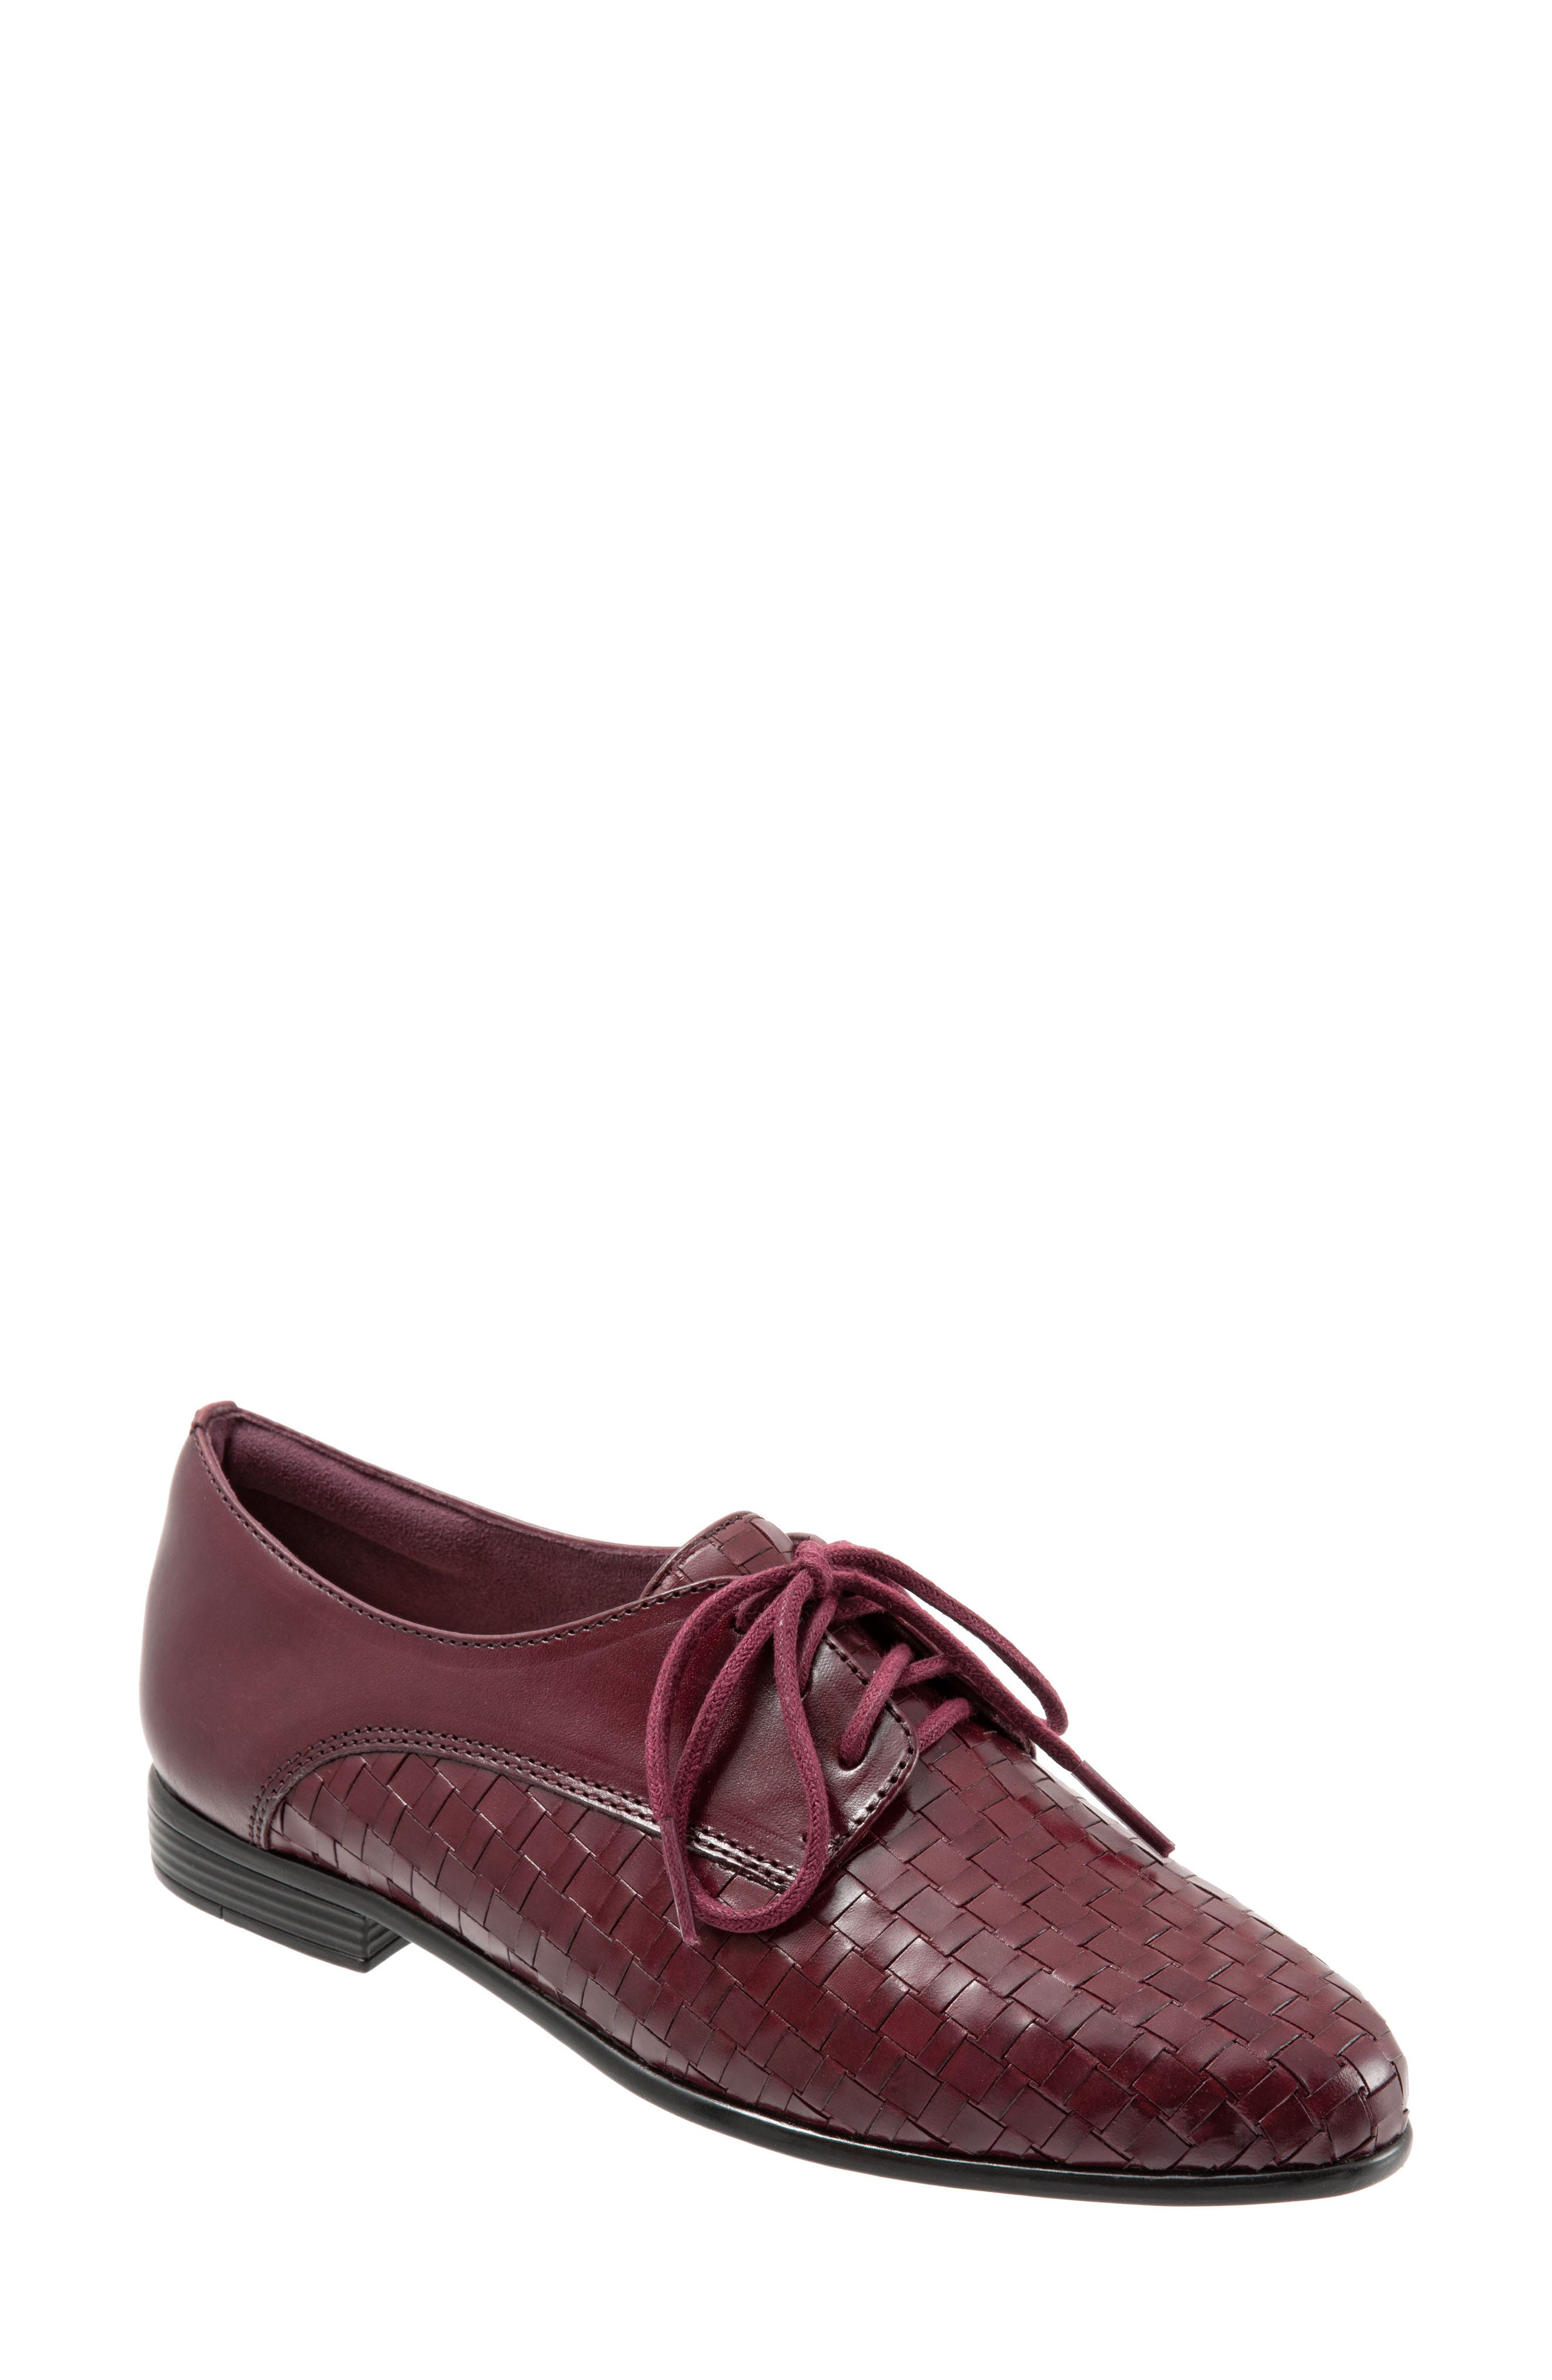 Lizzie Derby Flat,                             Main thumbnail 1, color,                             BLACK CHERRY LEATHER